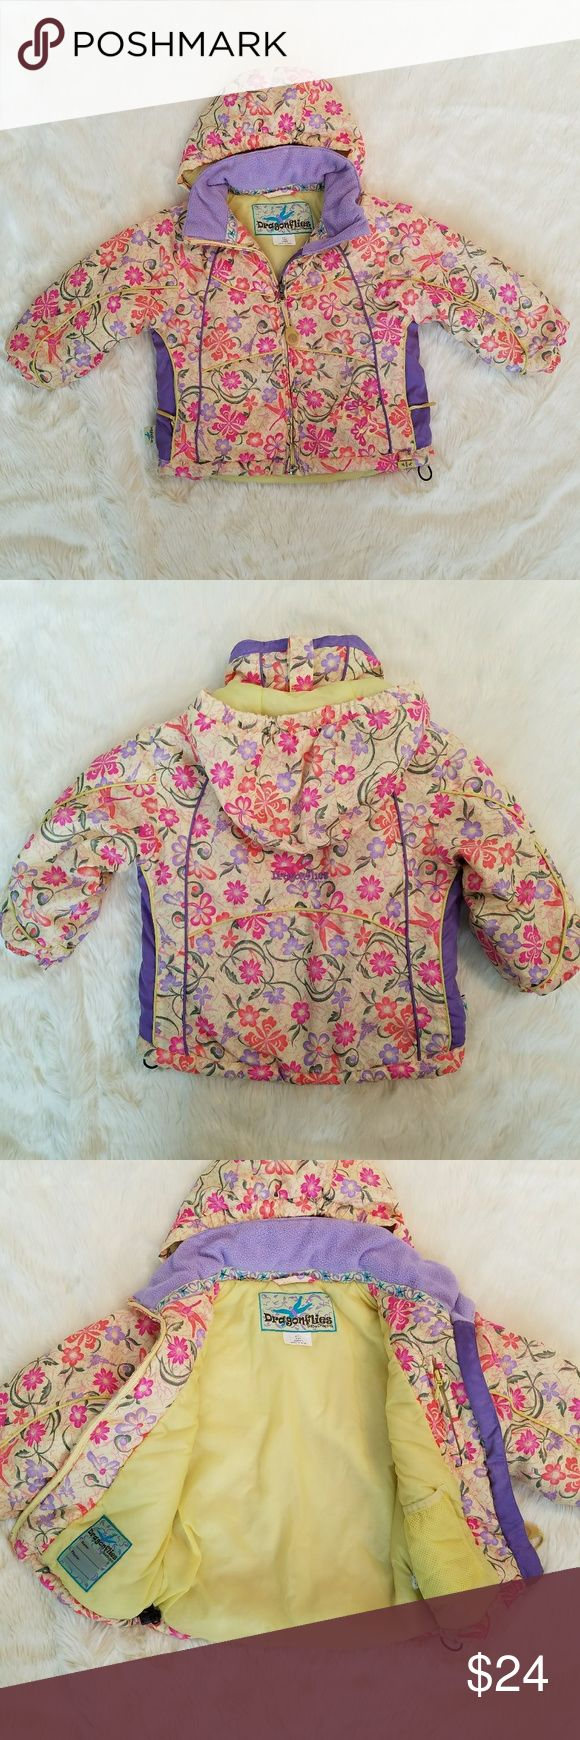 Size 4 girls Snow Dragons winter coat Girls size 4 dragonflies by Snow Dragons winter coat with hood. Two inside zip pockets plus exterior zip pockets toggles around waist to adjust tightness elastic cuff at wrist dragonflies logo embroidered on back. Colors may appear differently in person than on digital devices. Excellent condition, no stains tears or holes. Snow Dragons Jackets & Coats Puffers